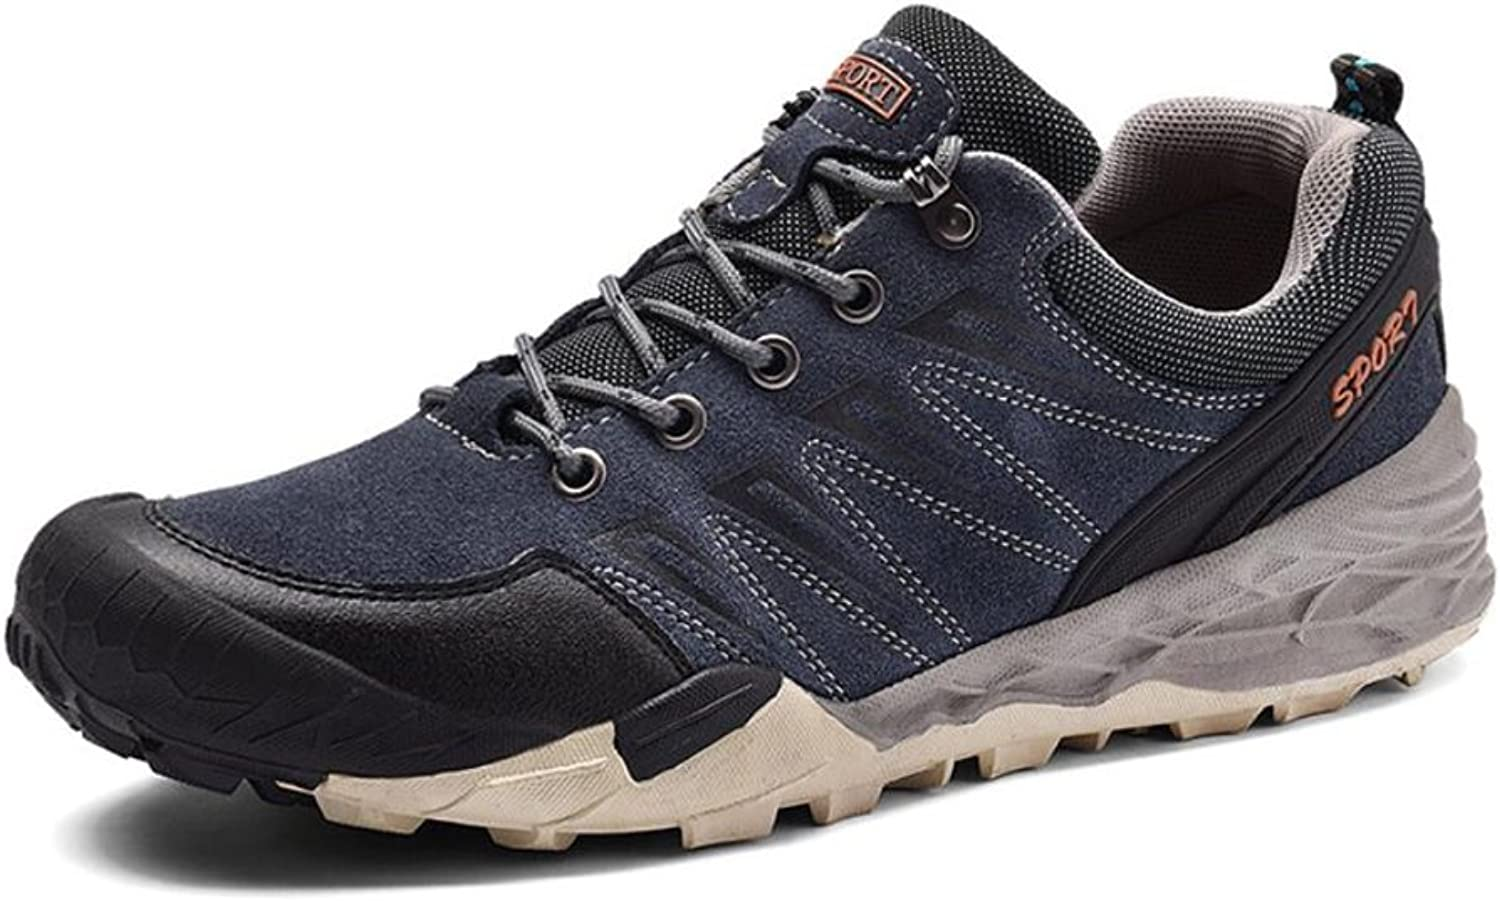 XUE Men's Athletic shoes,leather,spring Fall,Breathable Low-Top Sneakers,Non-slip Travel,Hiking shoes,Light Soles,Comfort Running shoes,Lightweight Walking shoes, Climbing shoes,Office